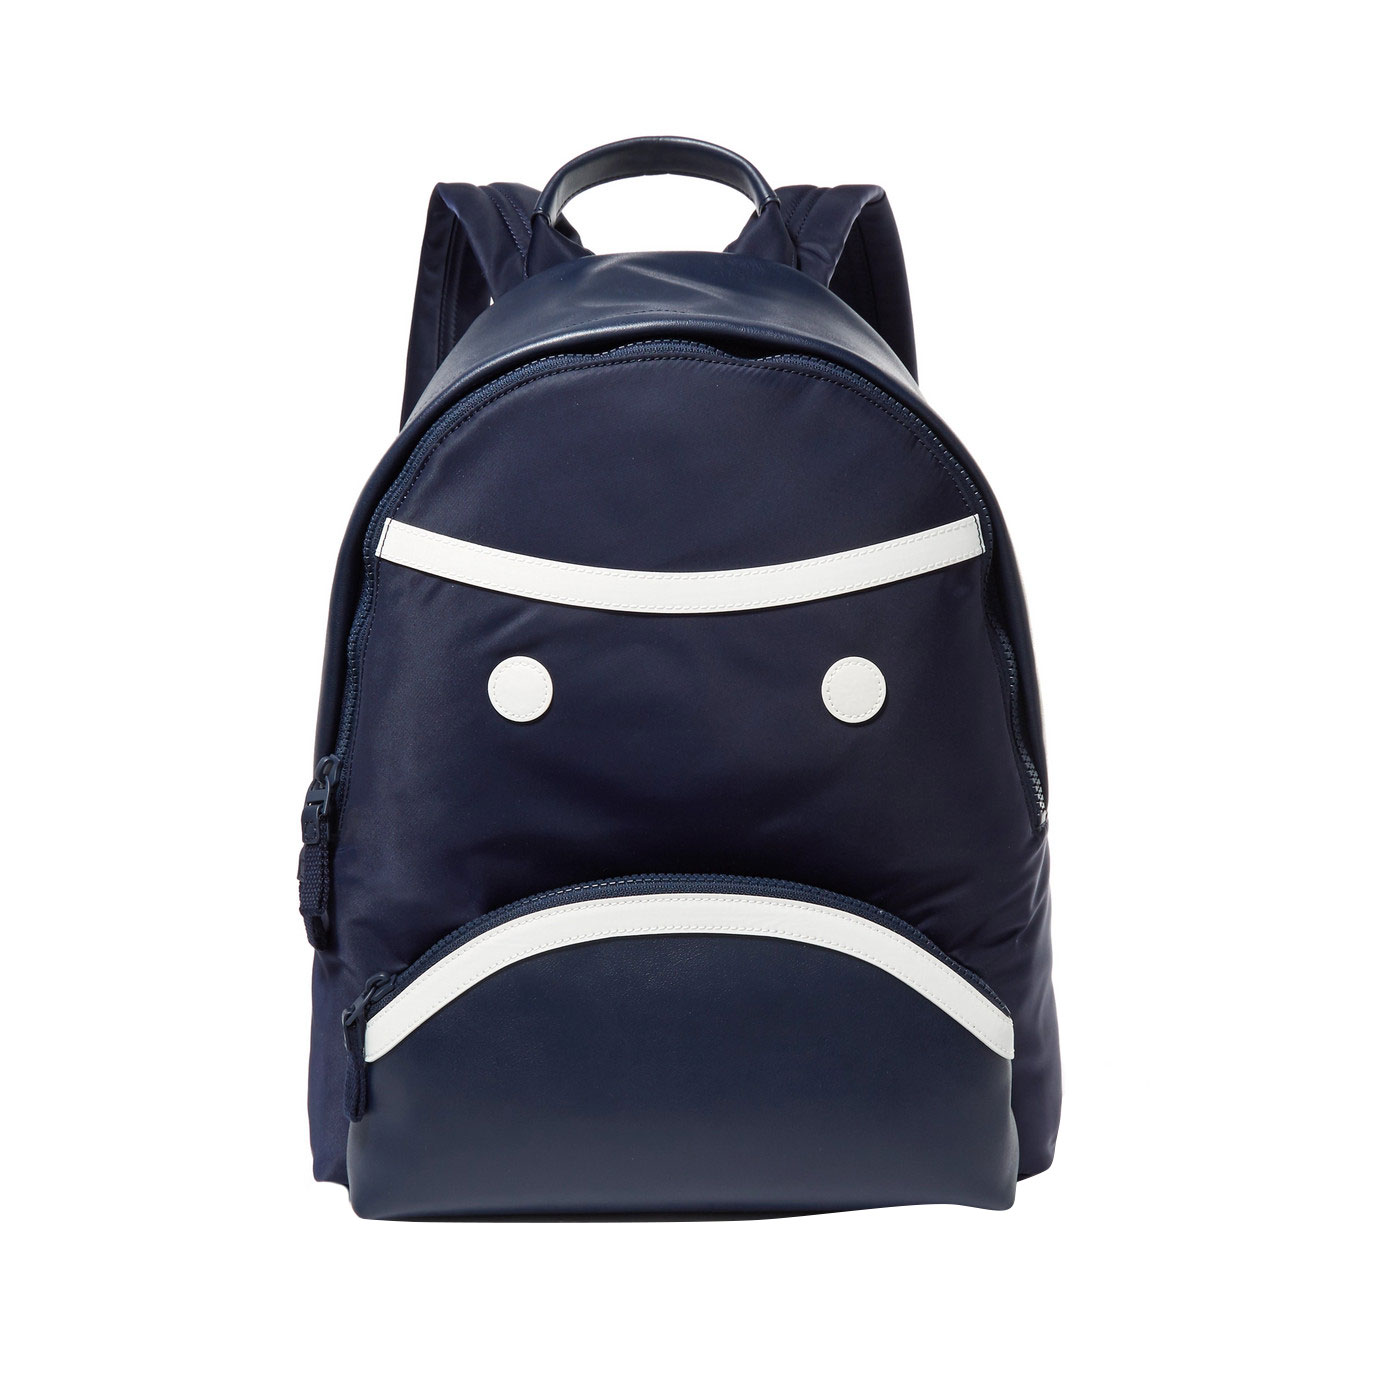 Tory Sport Grumps Appliquéd Leather and Shell Backpack